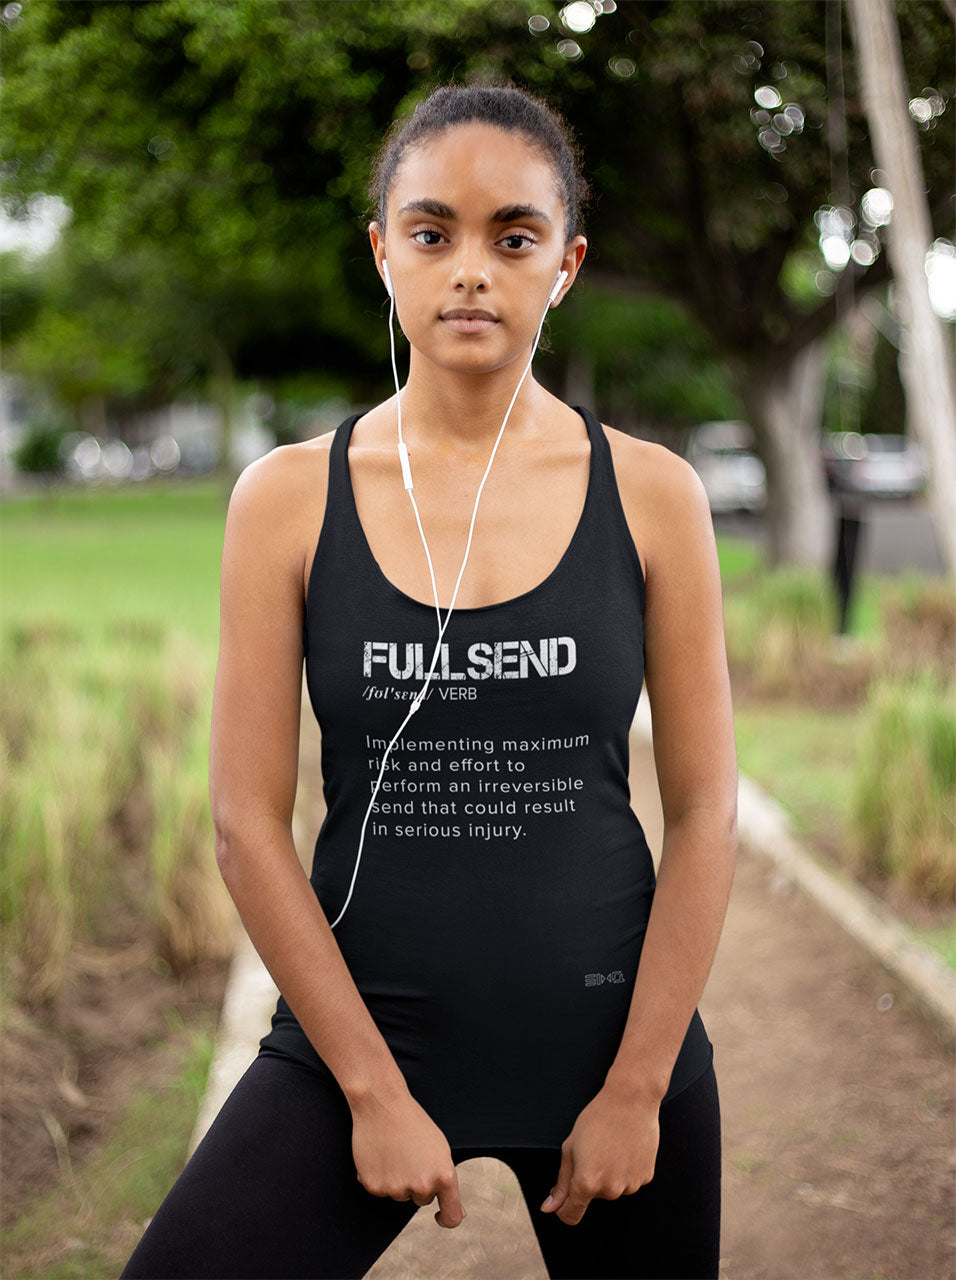 FullSend Definition Women's Tank